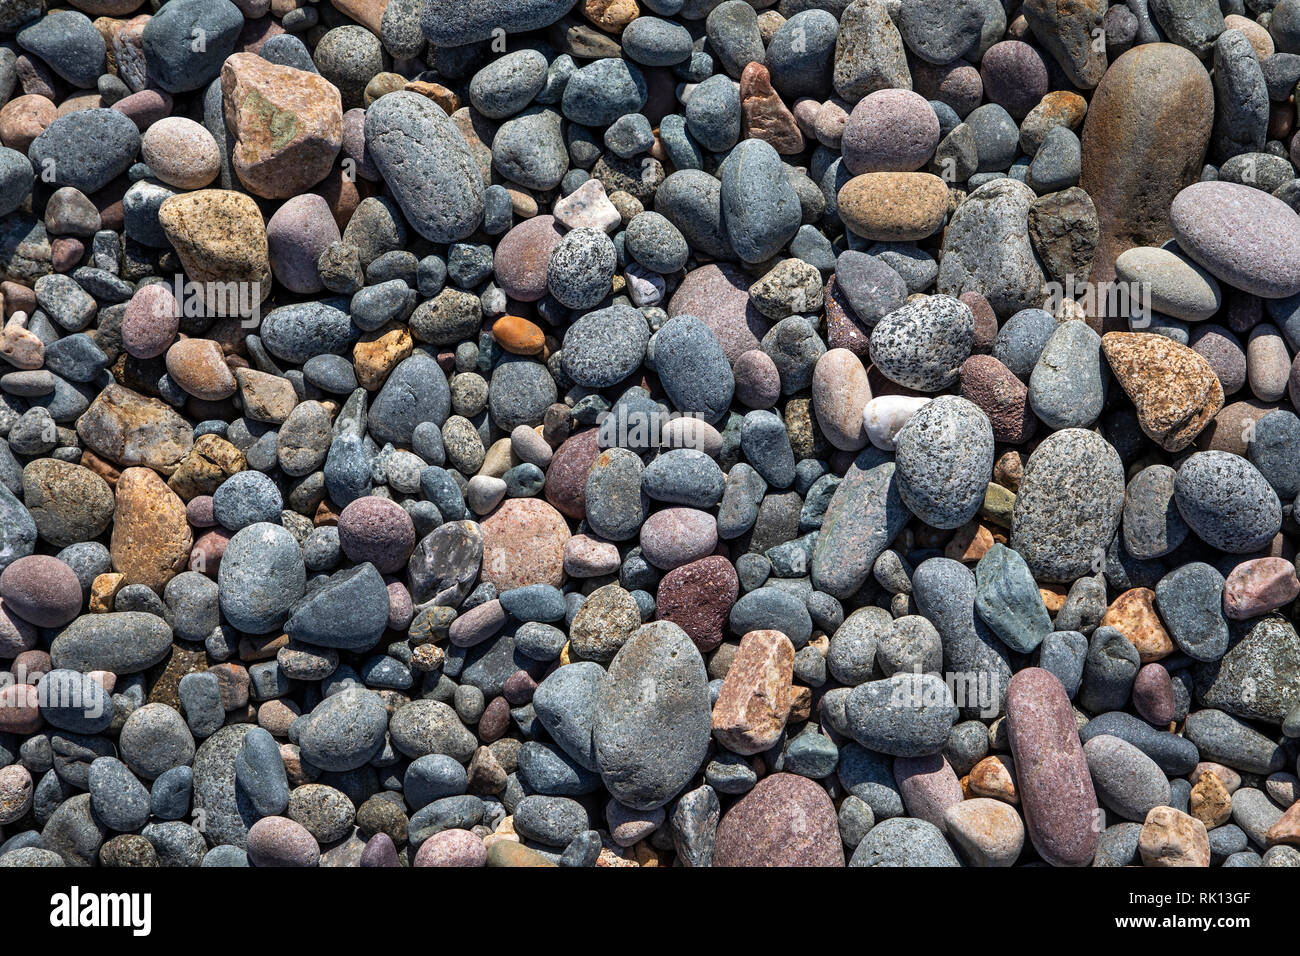 Pebbles on Crabby Bay beach showing the variety of rock types comprising Alderney geology. - Stock Image